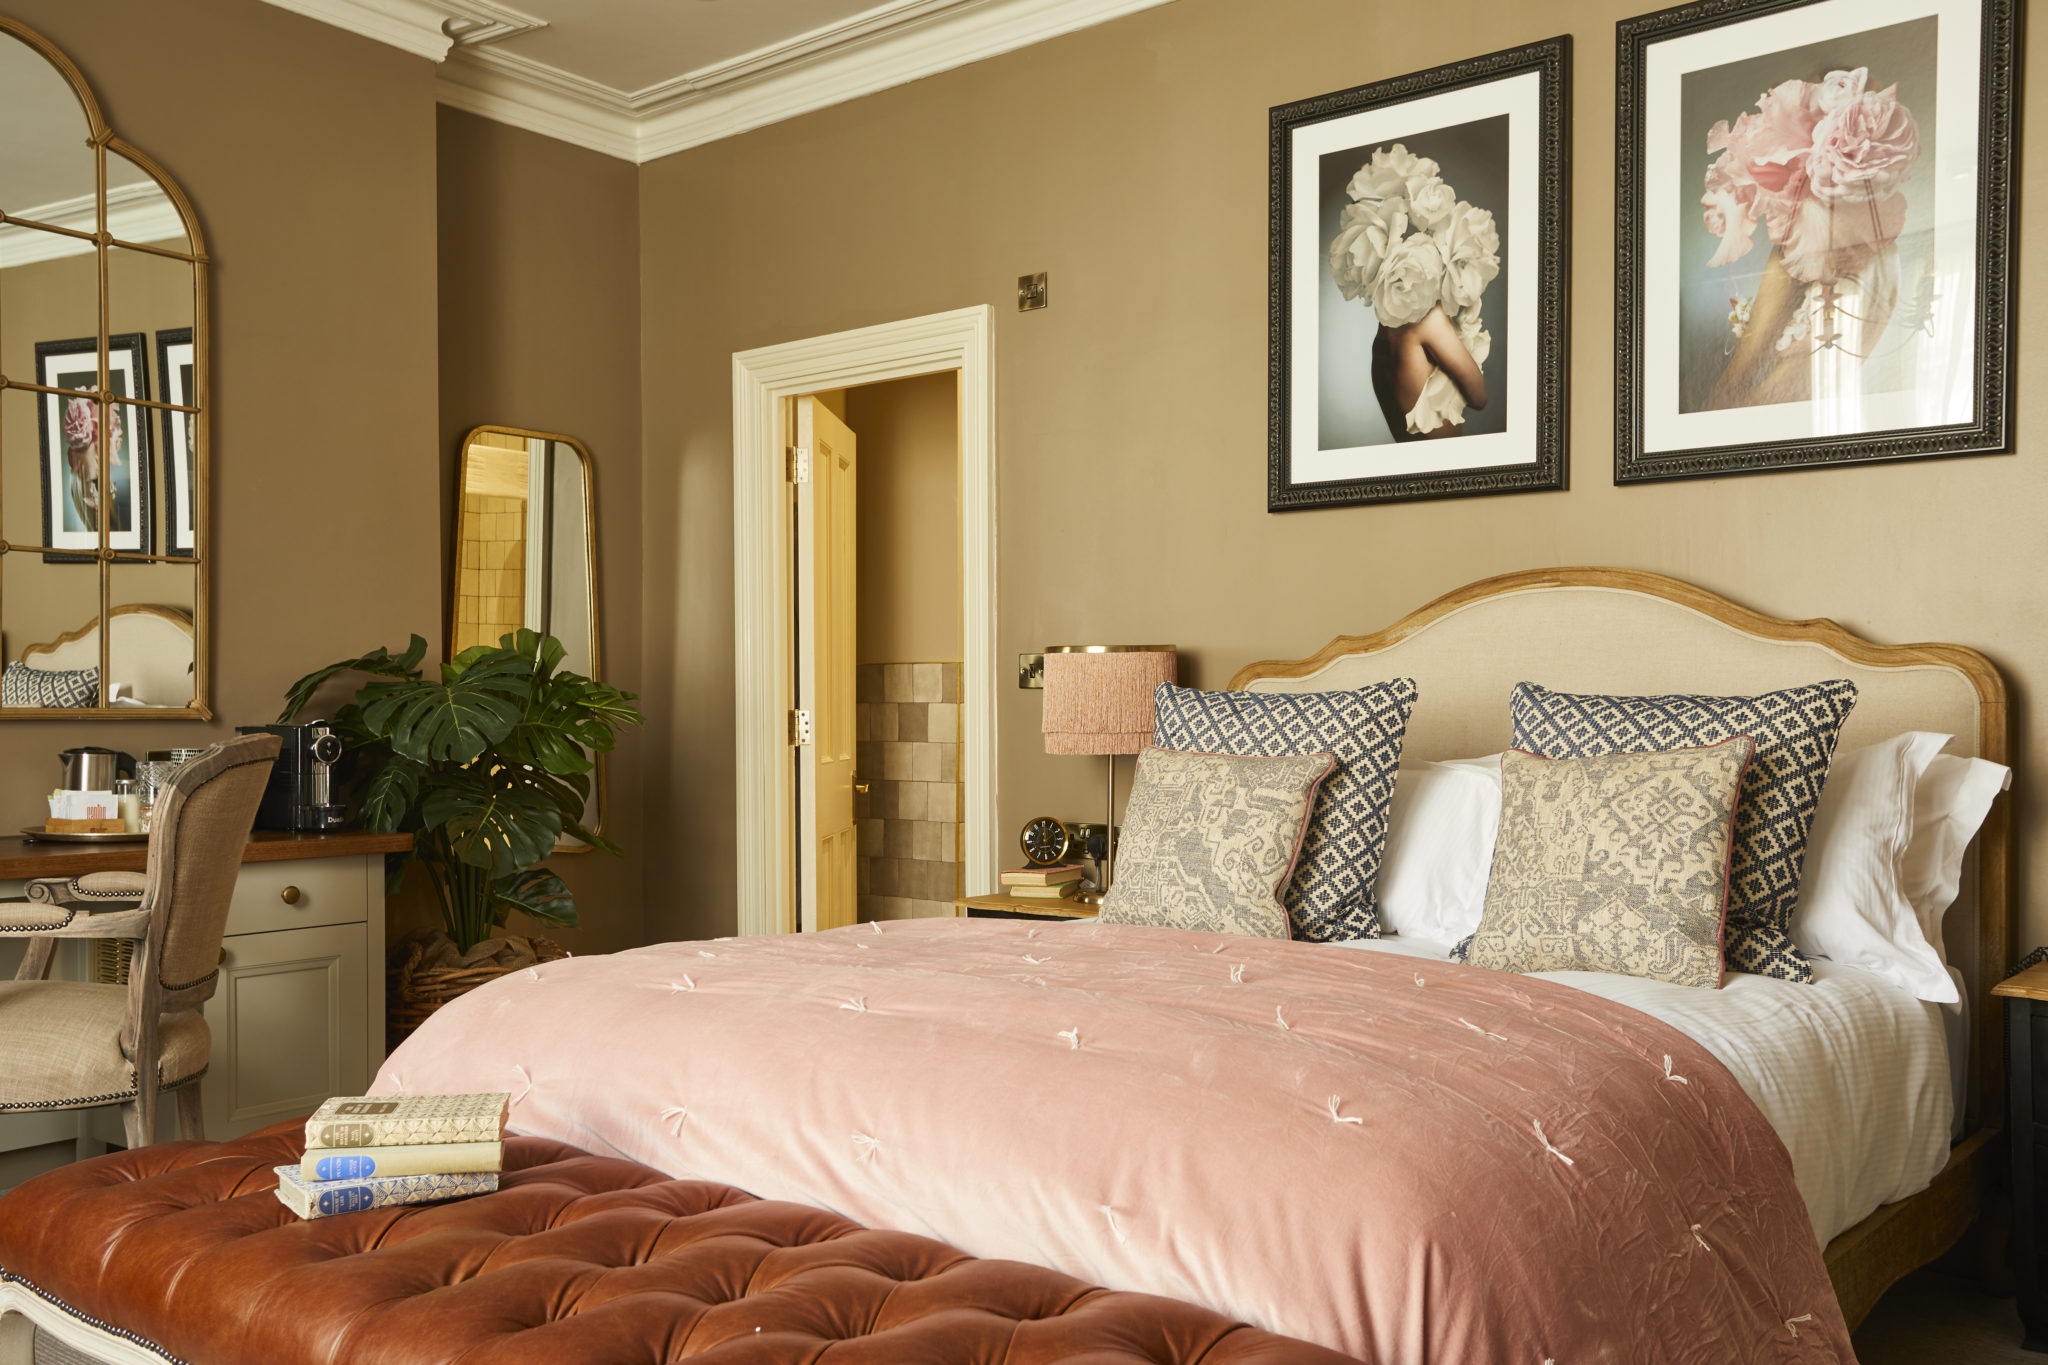 Image of a bedroom interior at the Broad Street Townhouse, Bath, demonstrating artwork installation by Indigo Art Ltd.